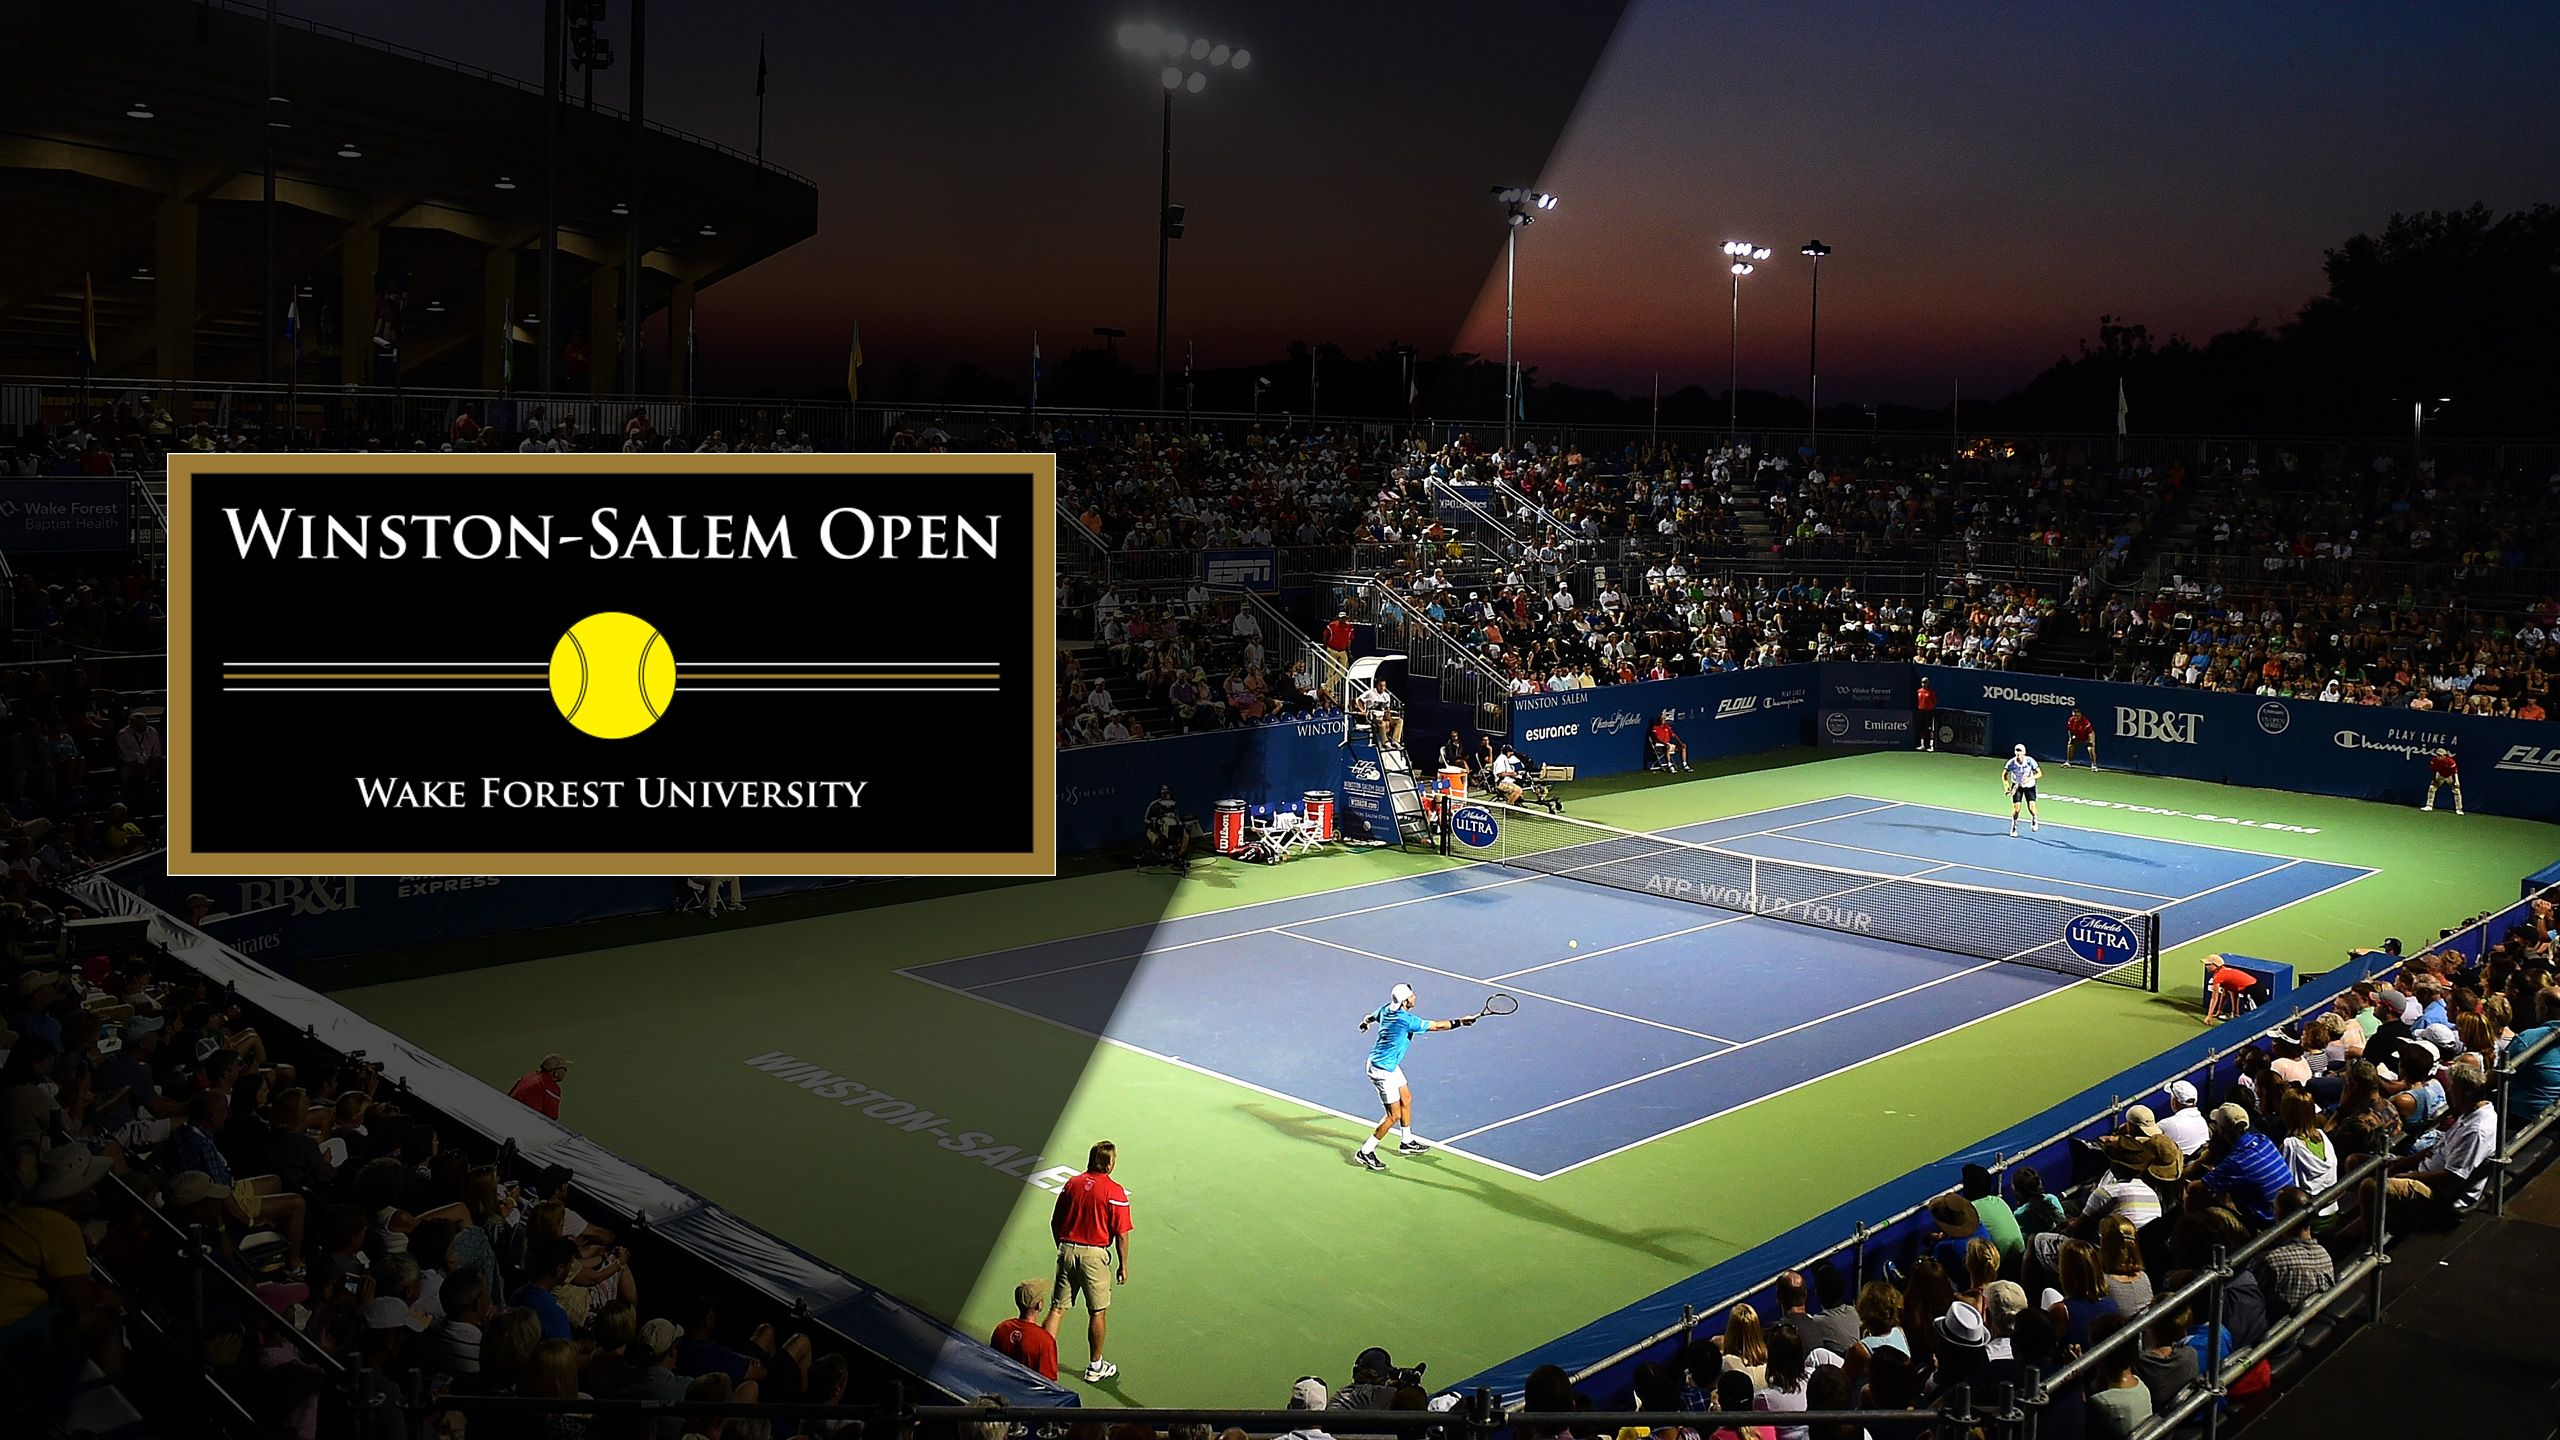 2017 US Open Series - Winston-Salem Open (Second Round)